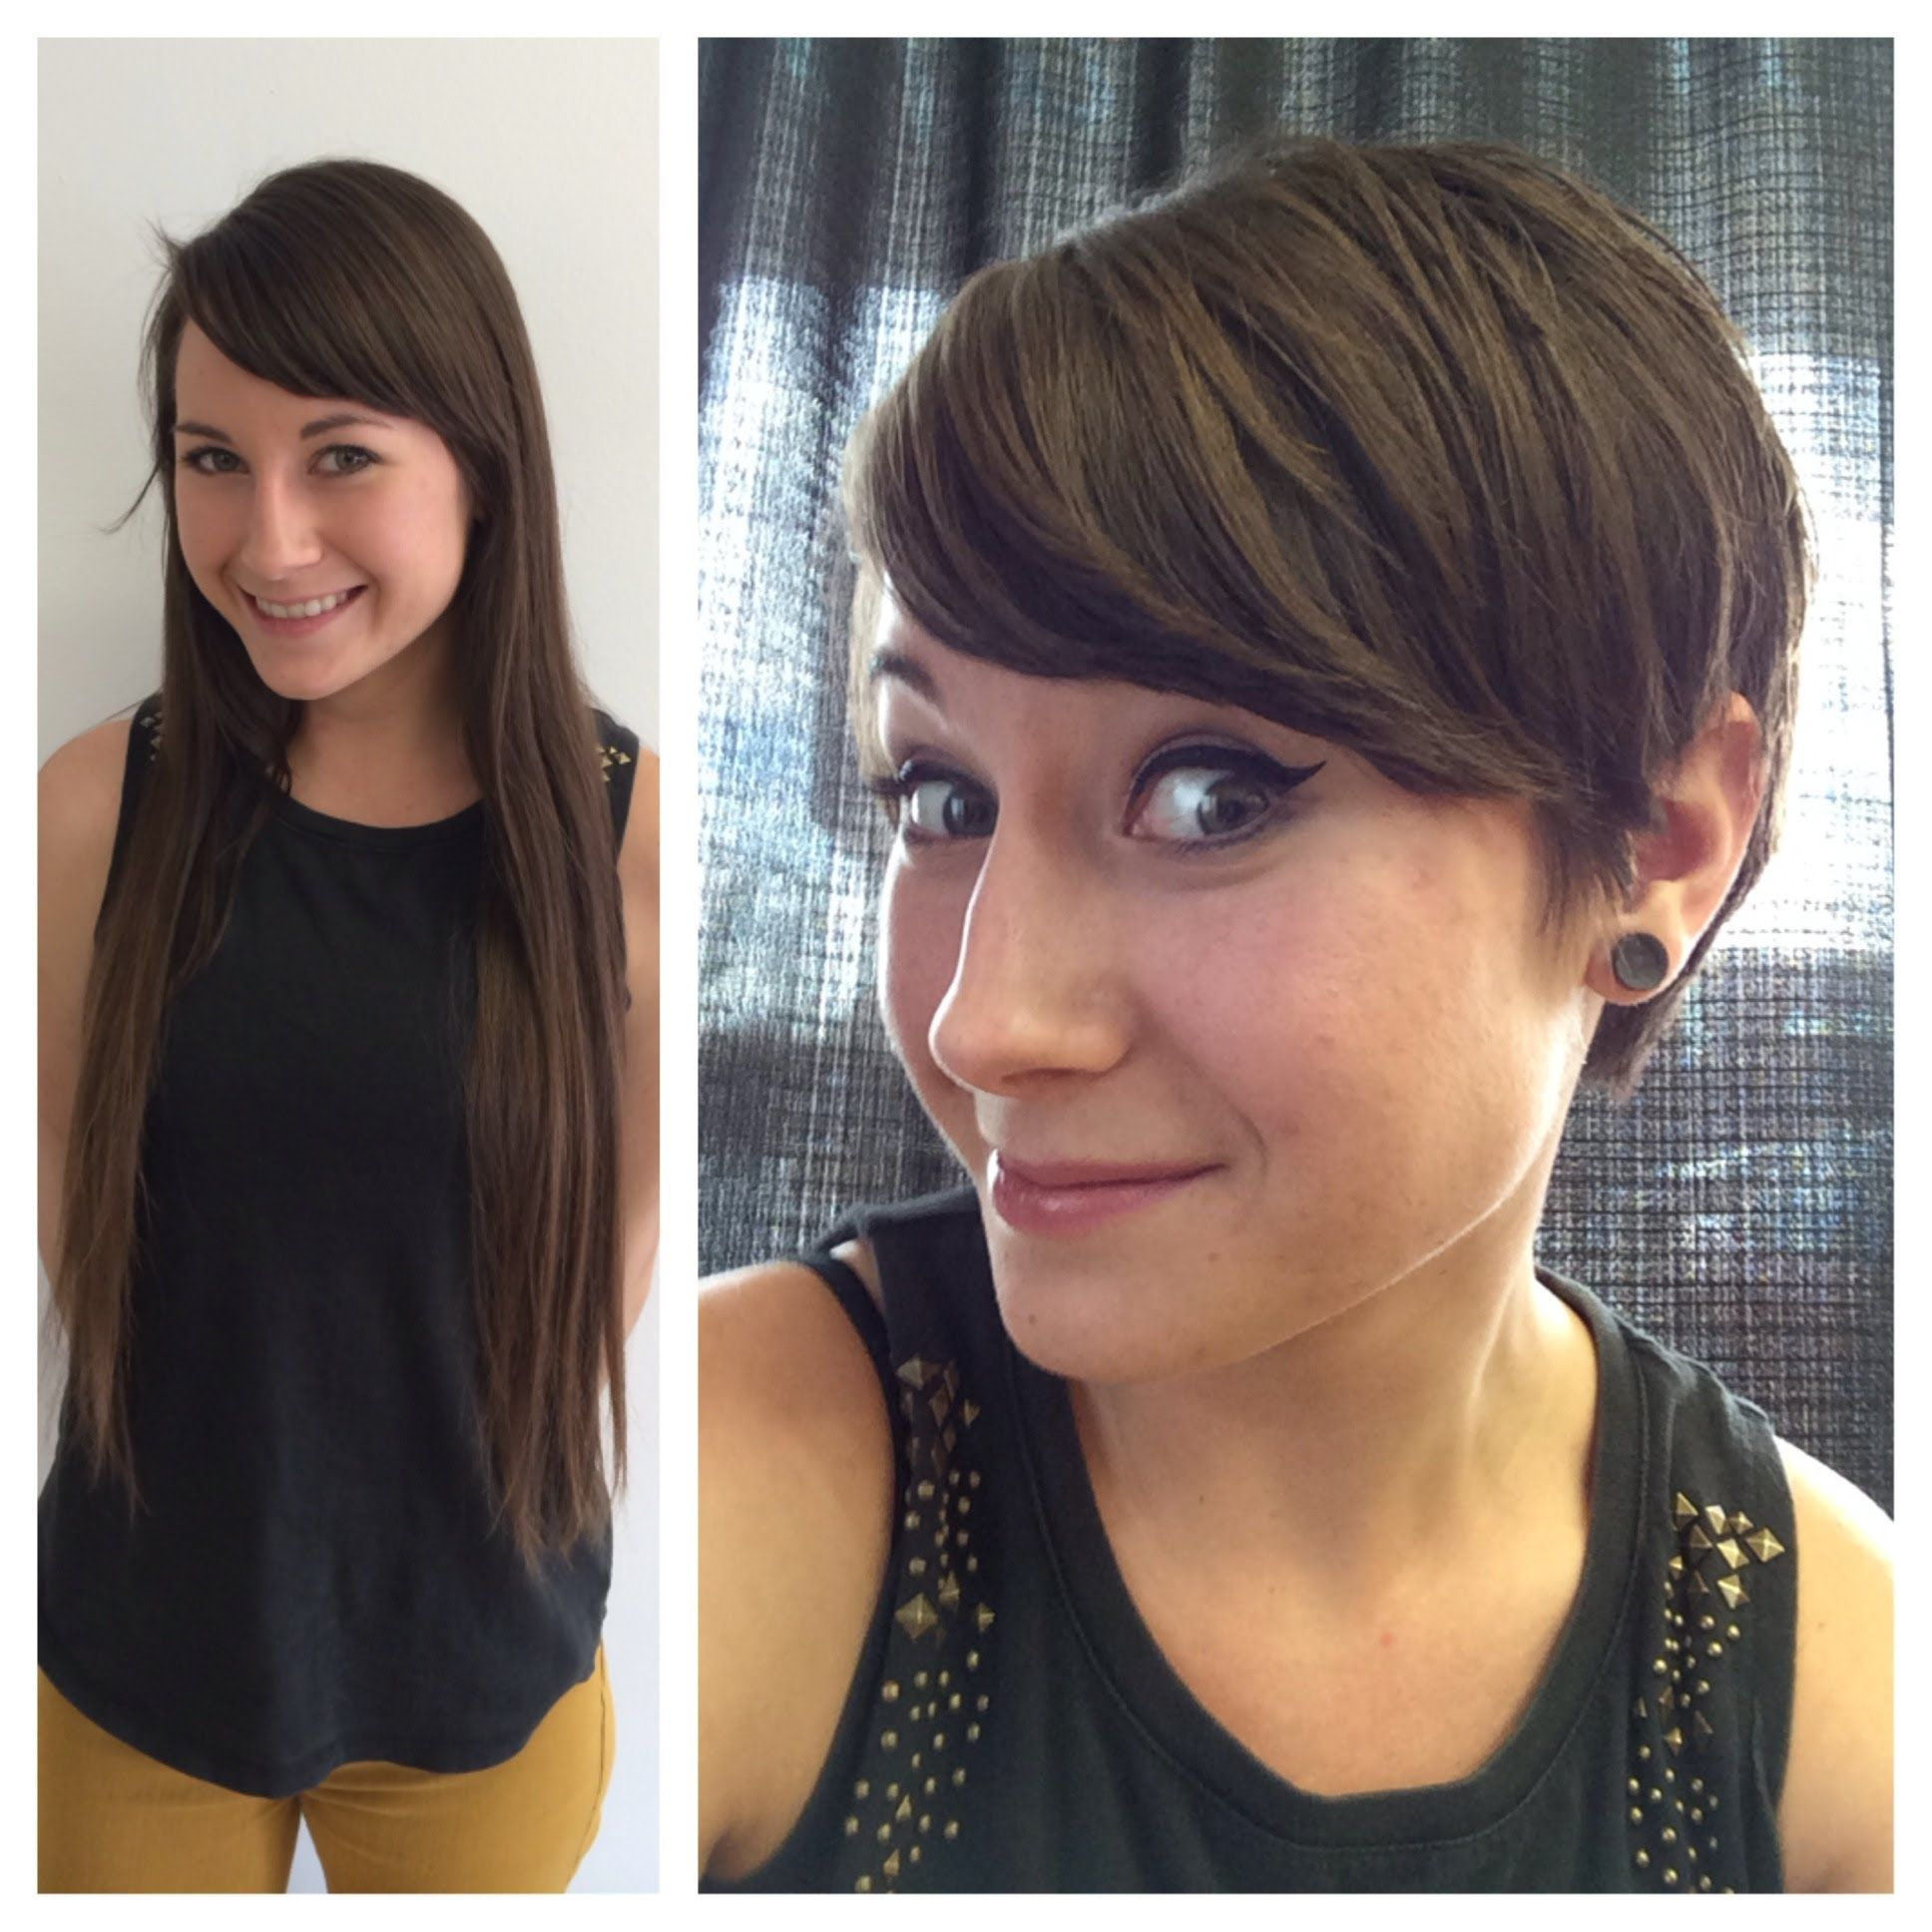 Haircut On Long Hair Brunette To A Pixie Cut Anne Hathaway Style